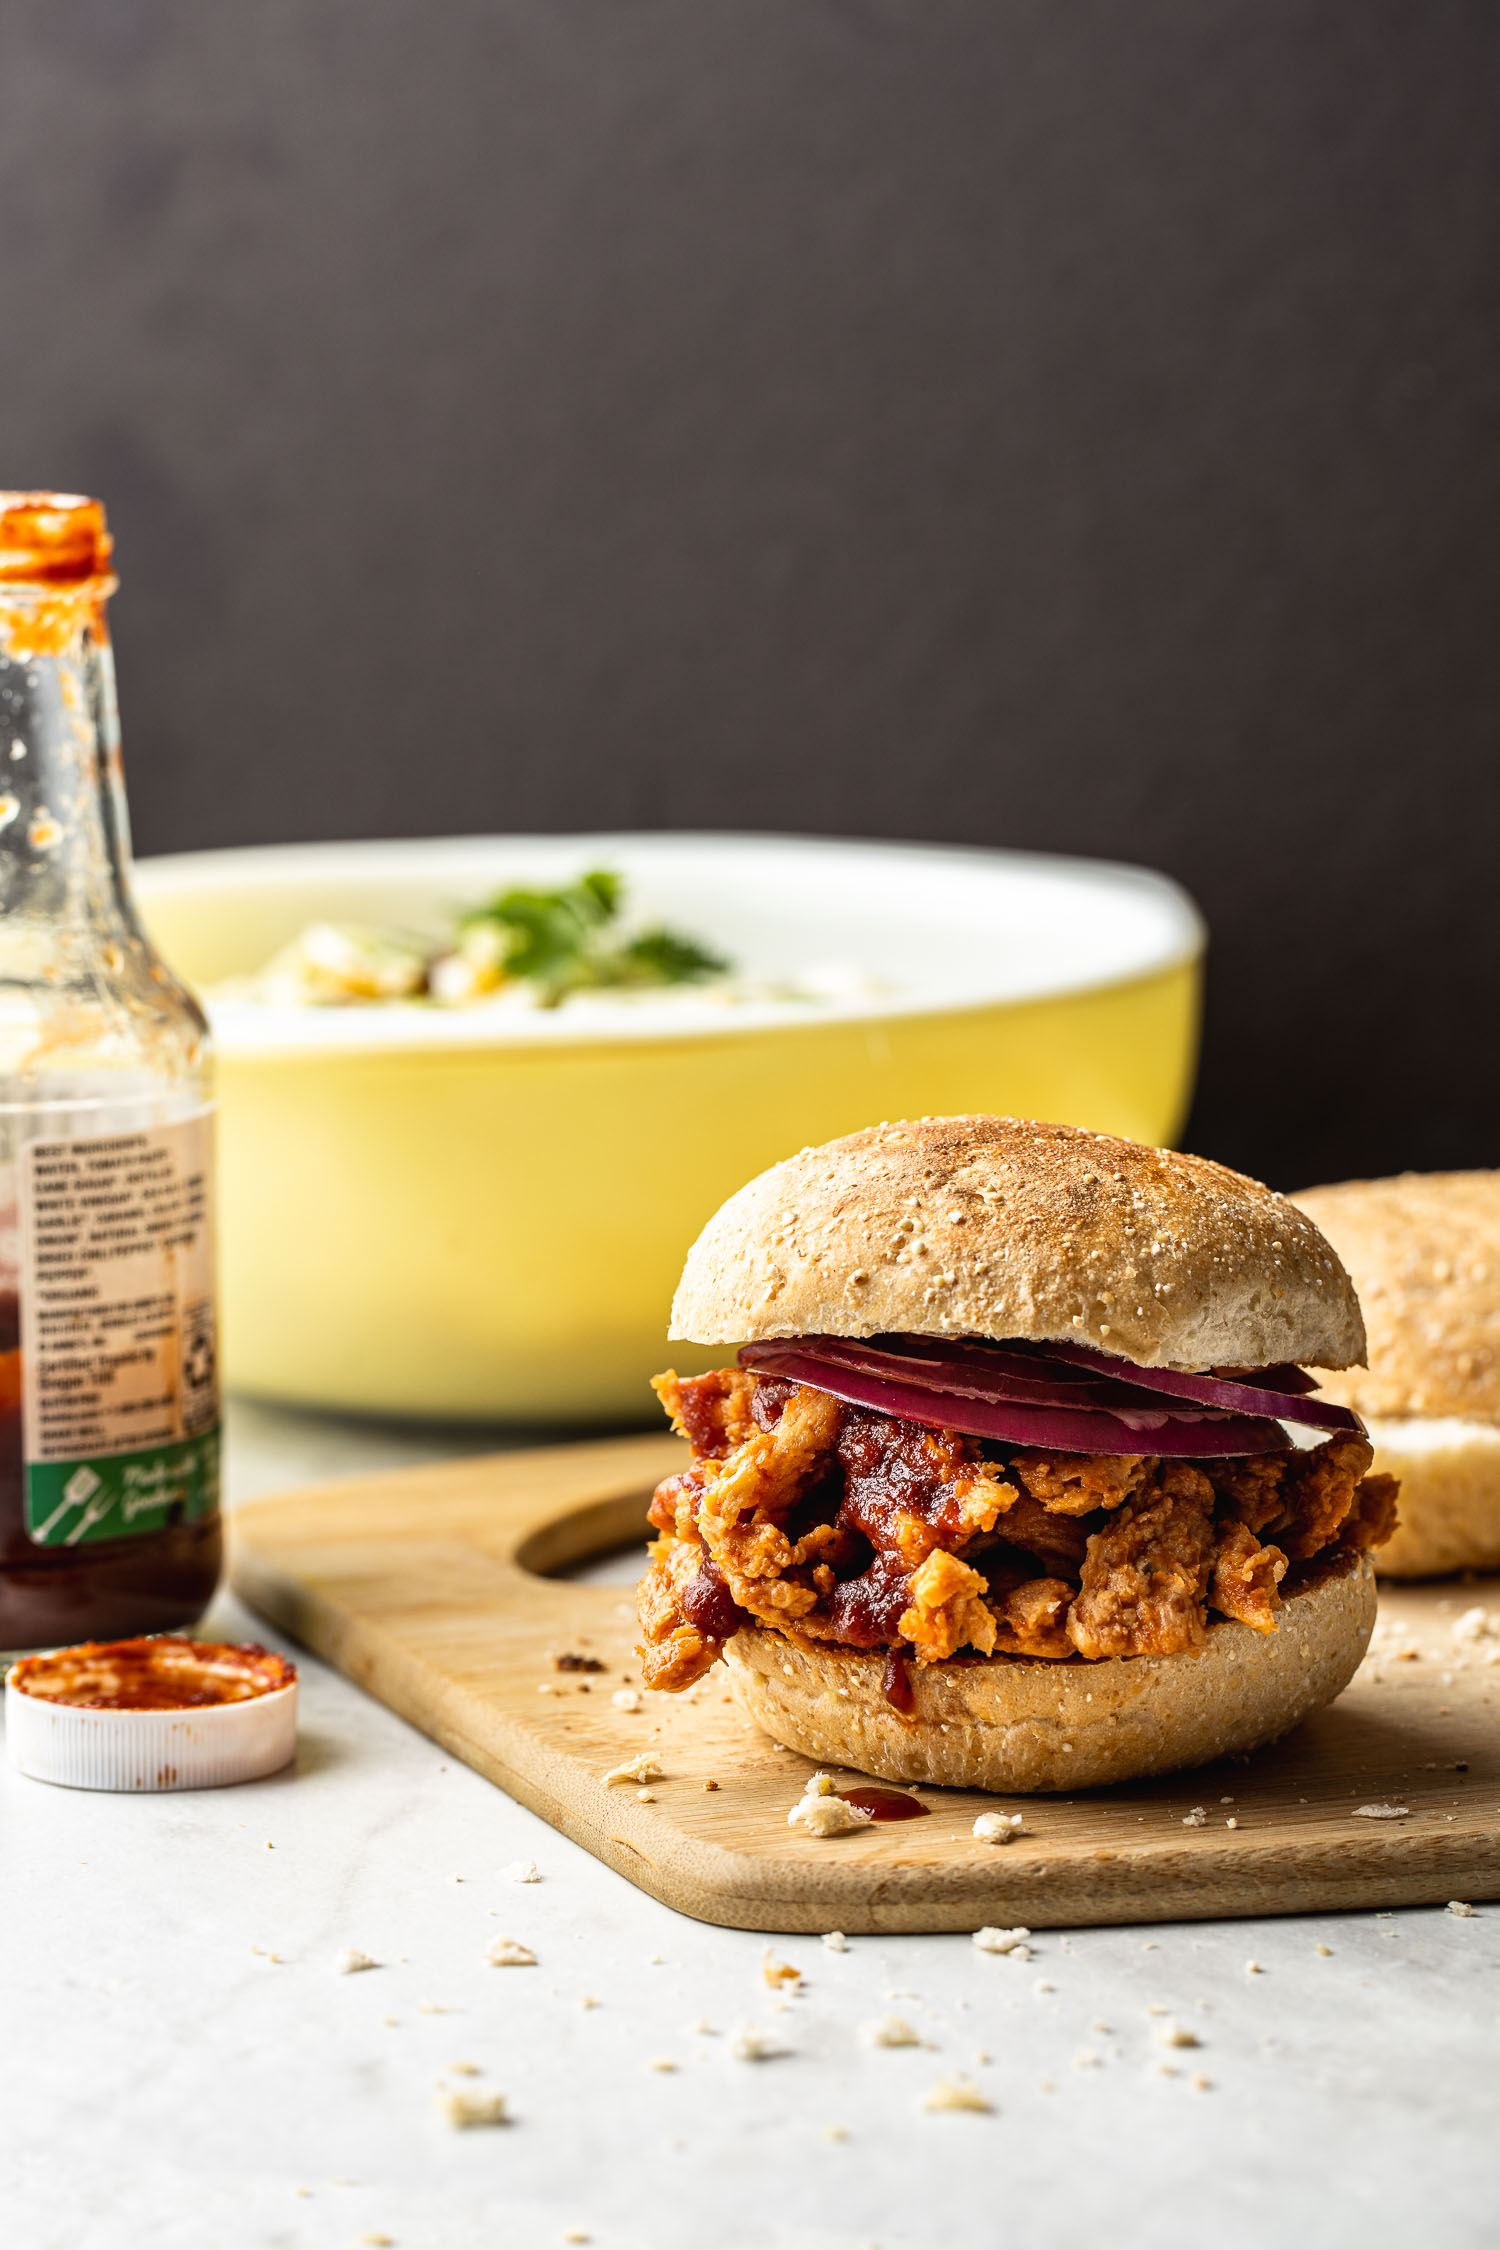 saucy bbq sandwich, butler brand soy curls, meatless bbq, yellow bowl, coleslaw, bottle of bbq sauce